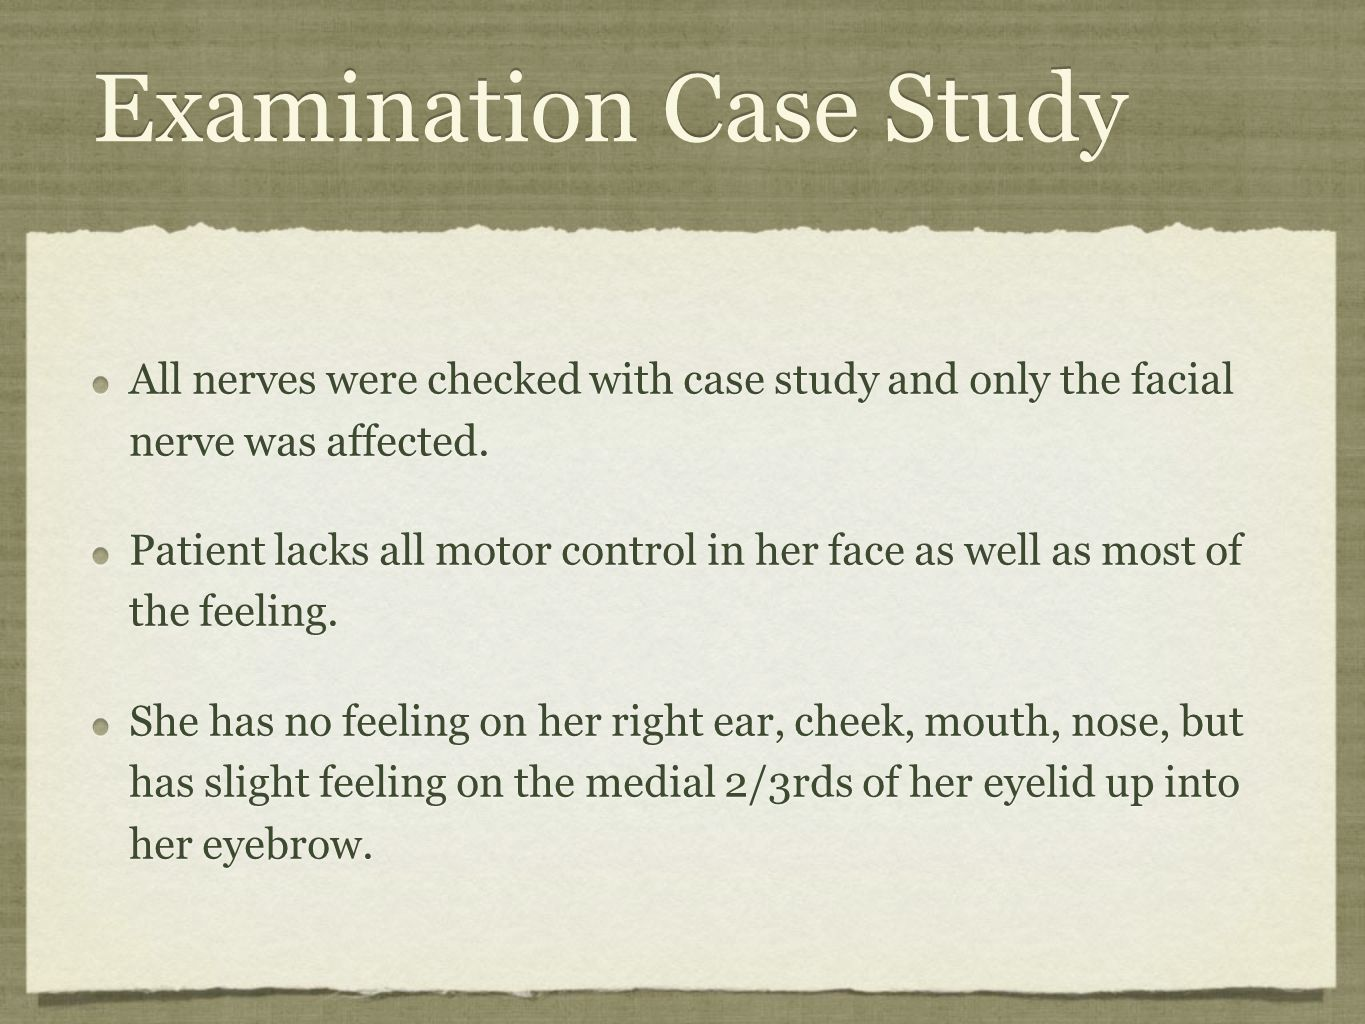 Examination Case Study All nerves were checked with case study and only the facial nerve was affected. Patient lacks all motor control in her face as